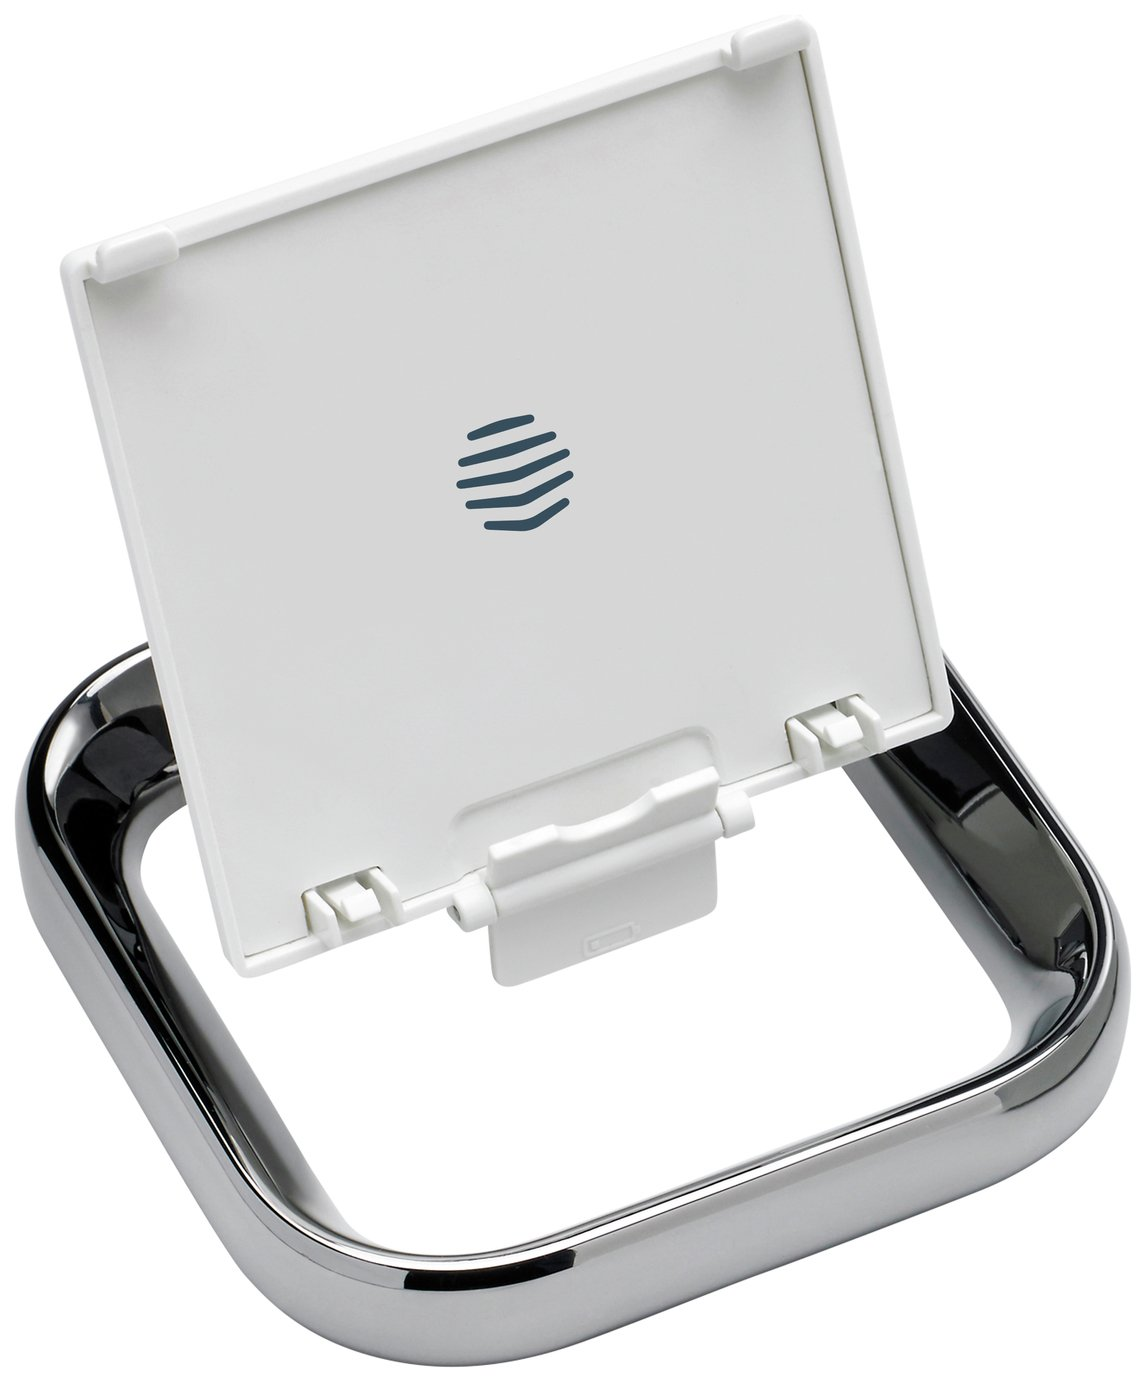 Image of Hive Thermostat Stand